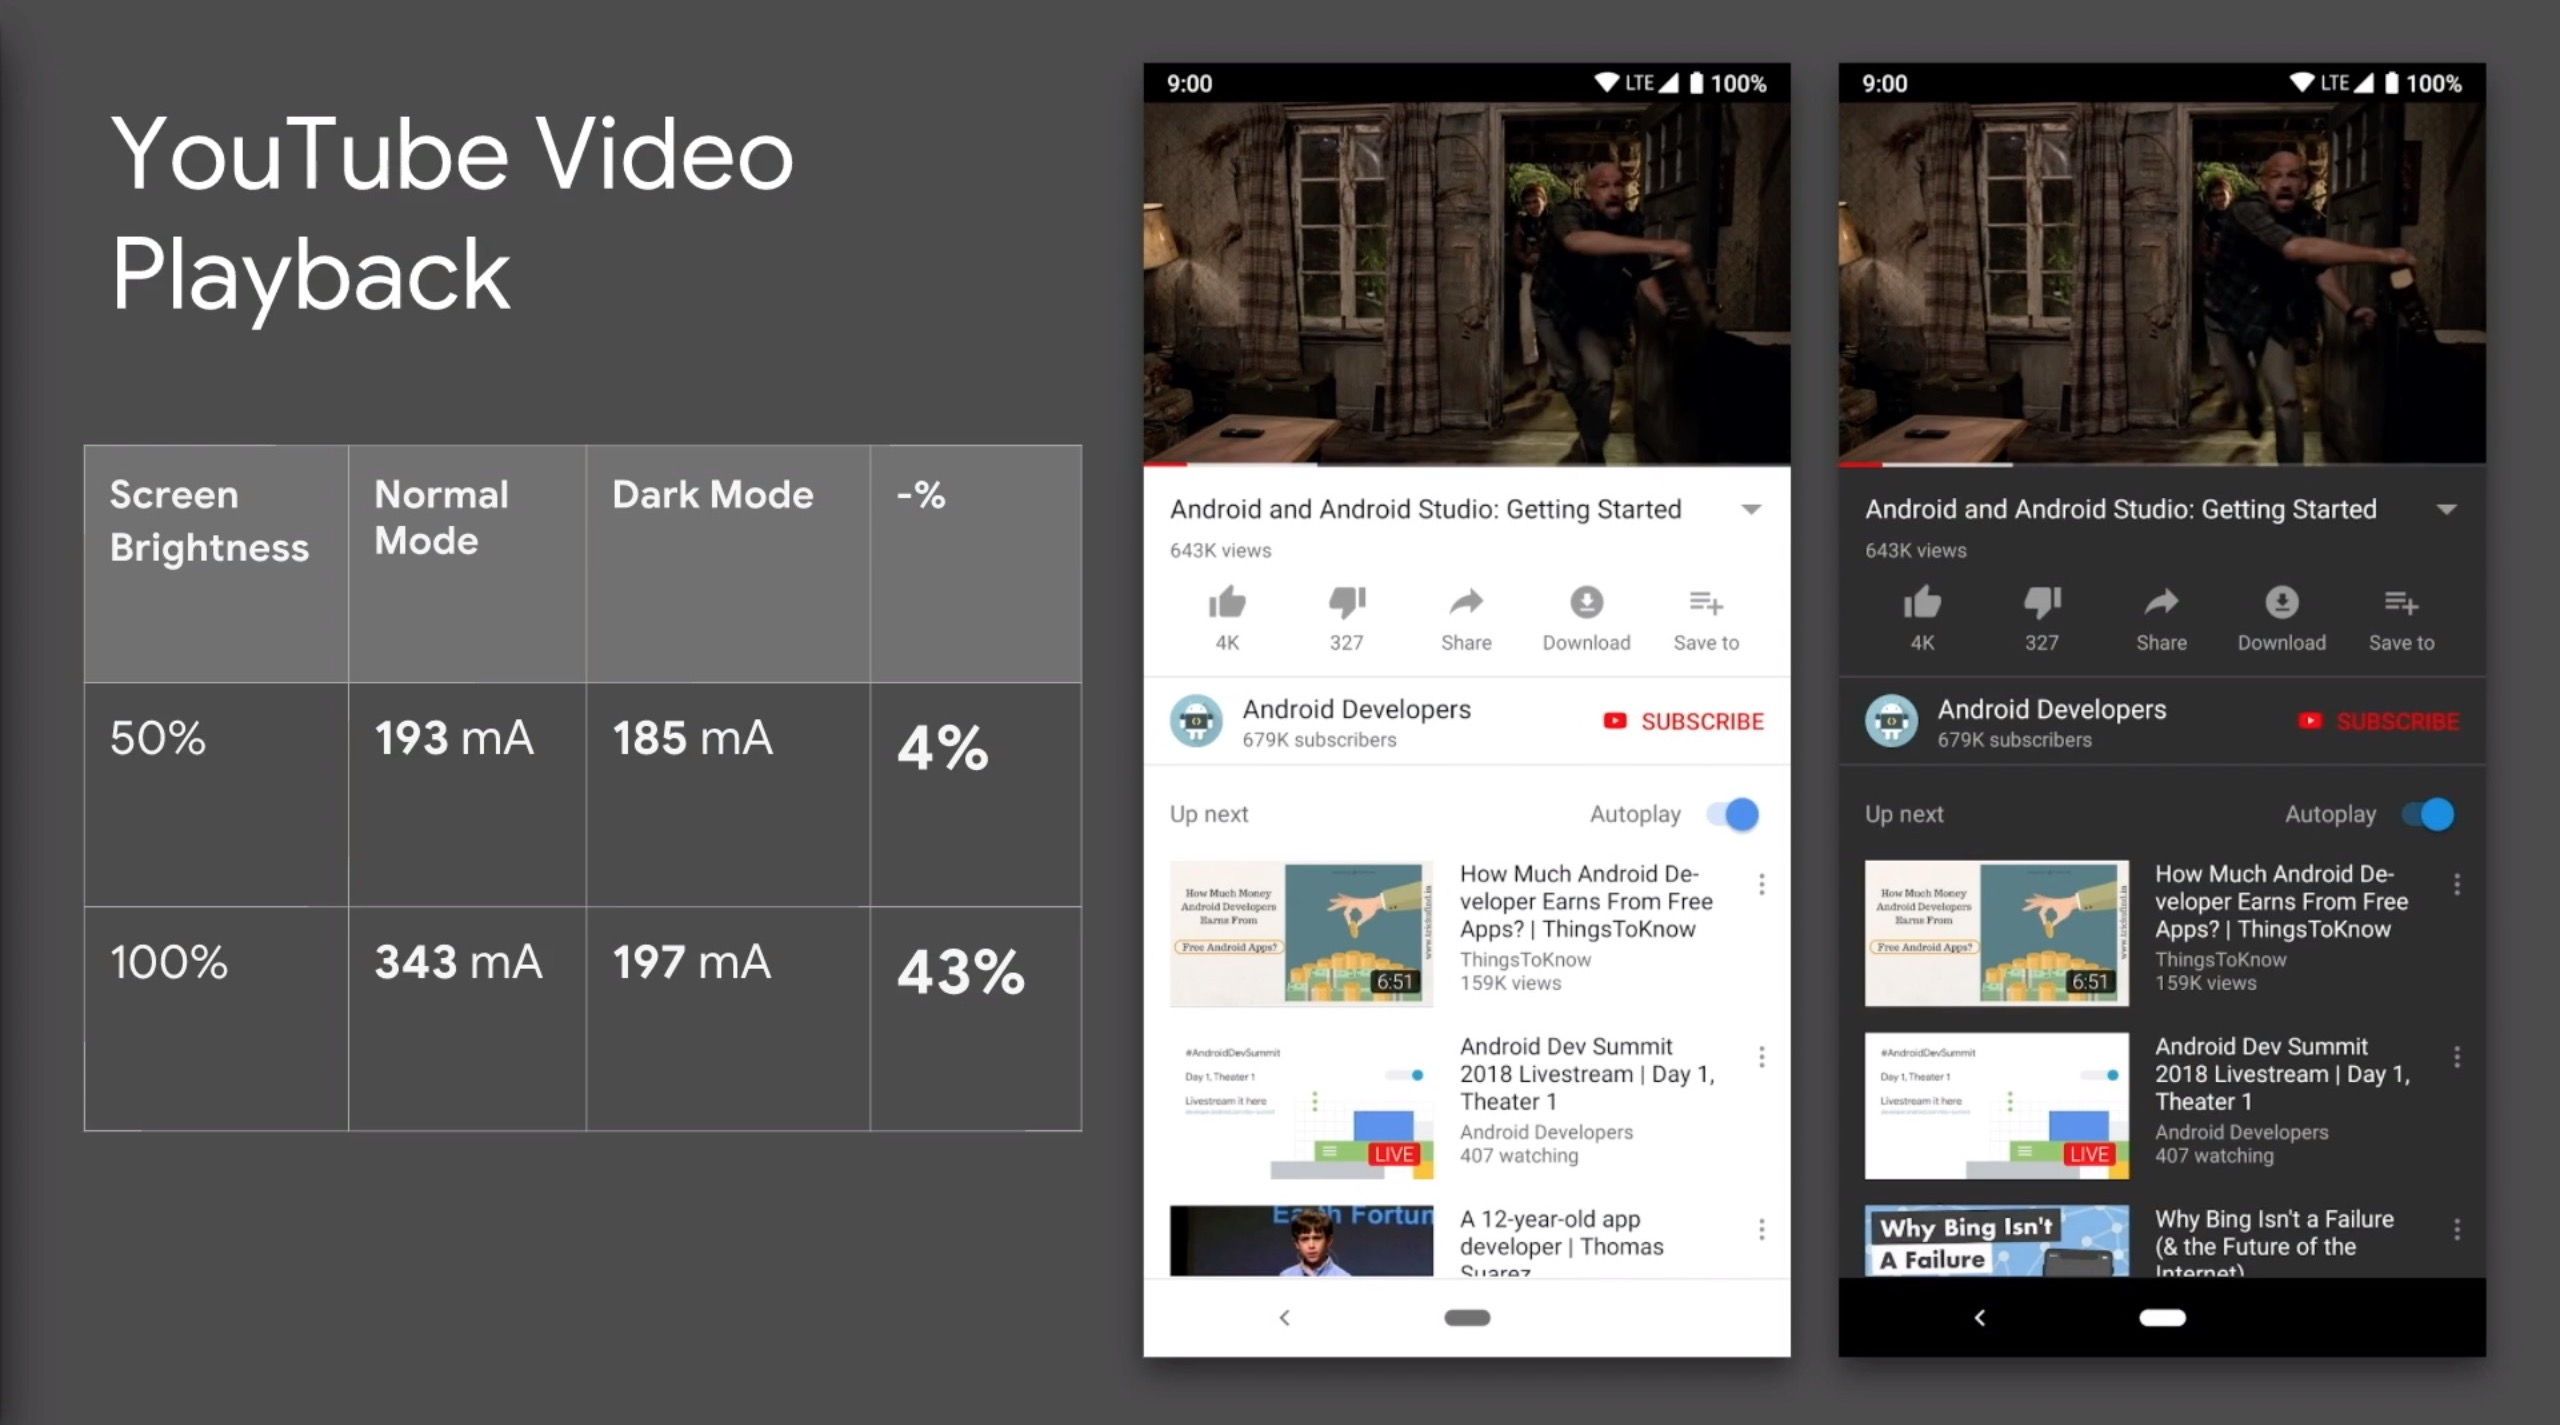 google encouraging dark themes in android apps to conserve battery